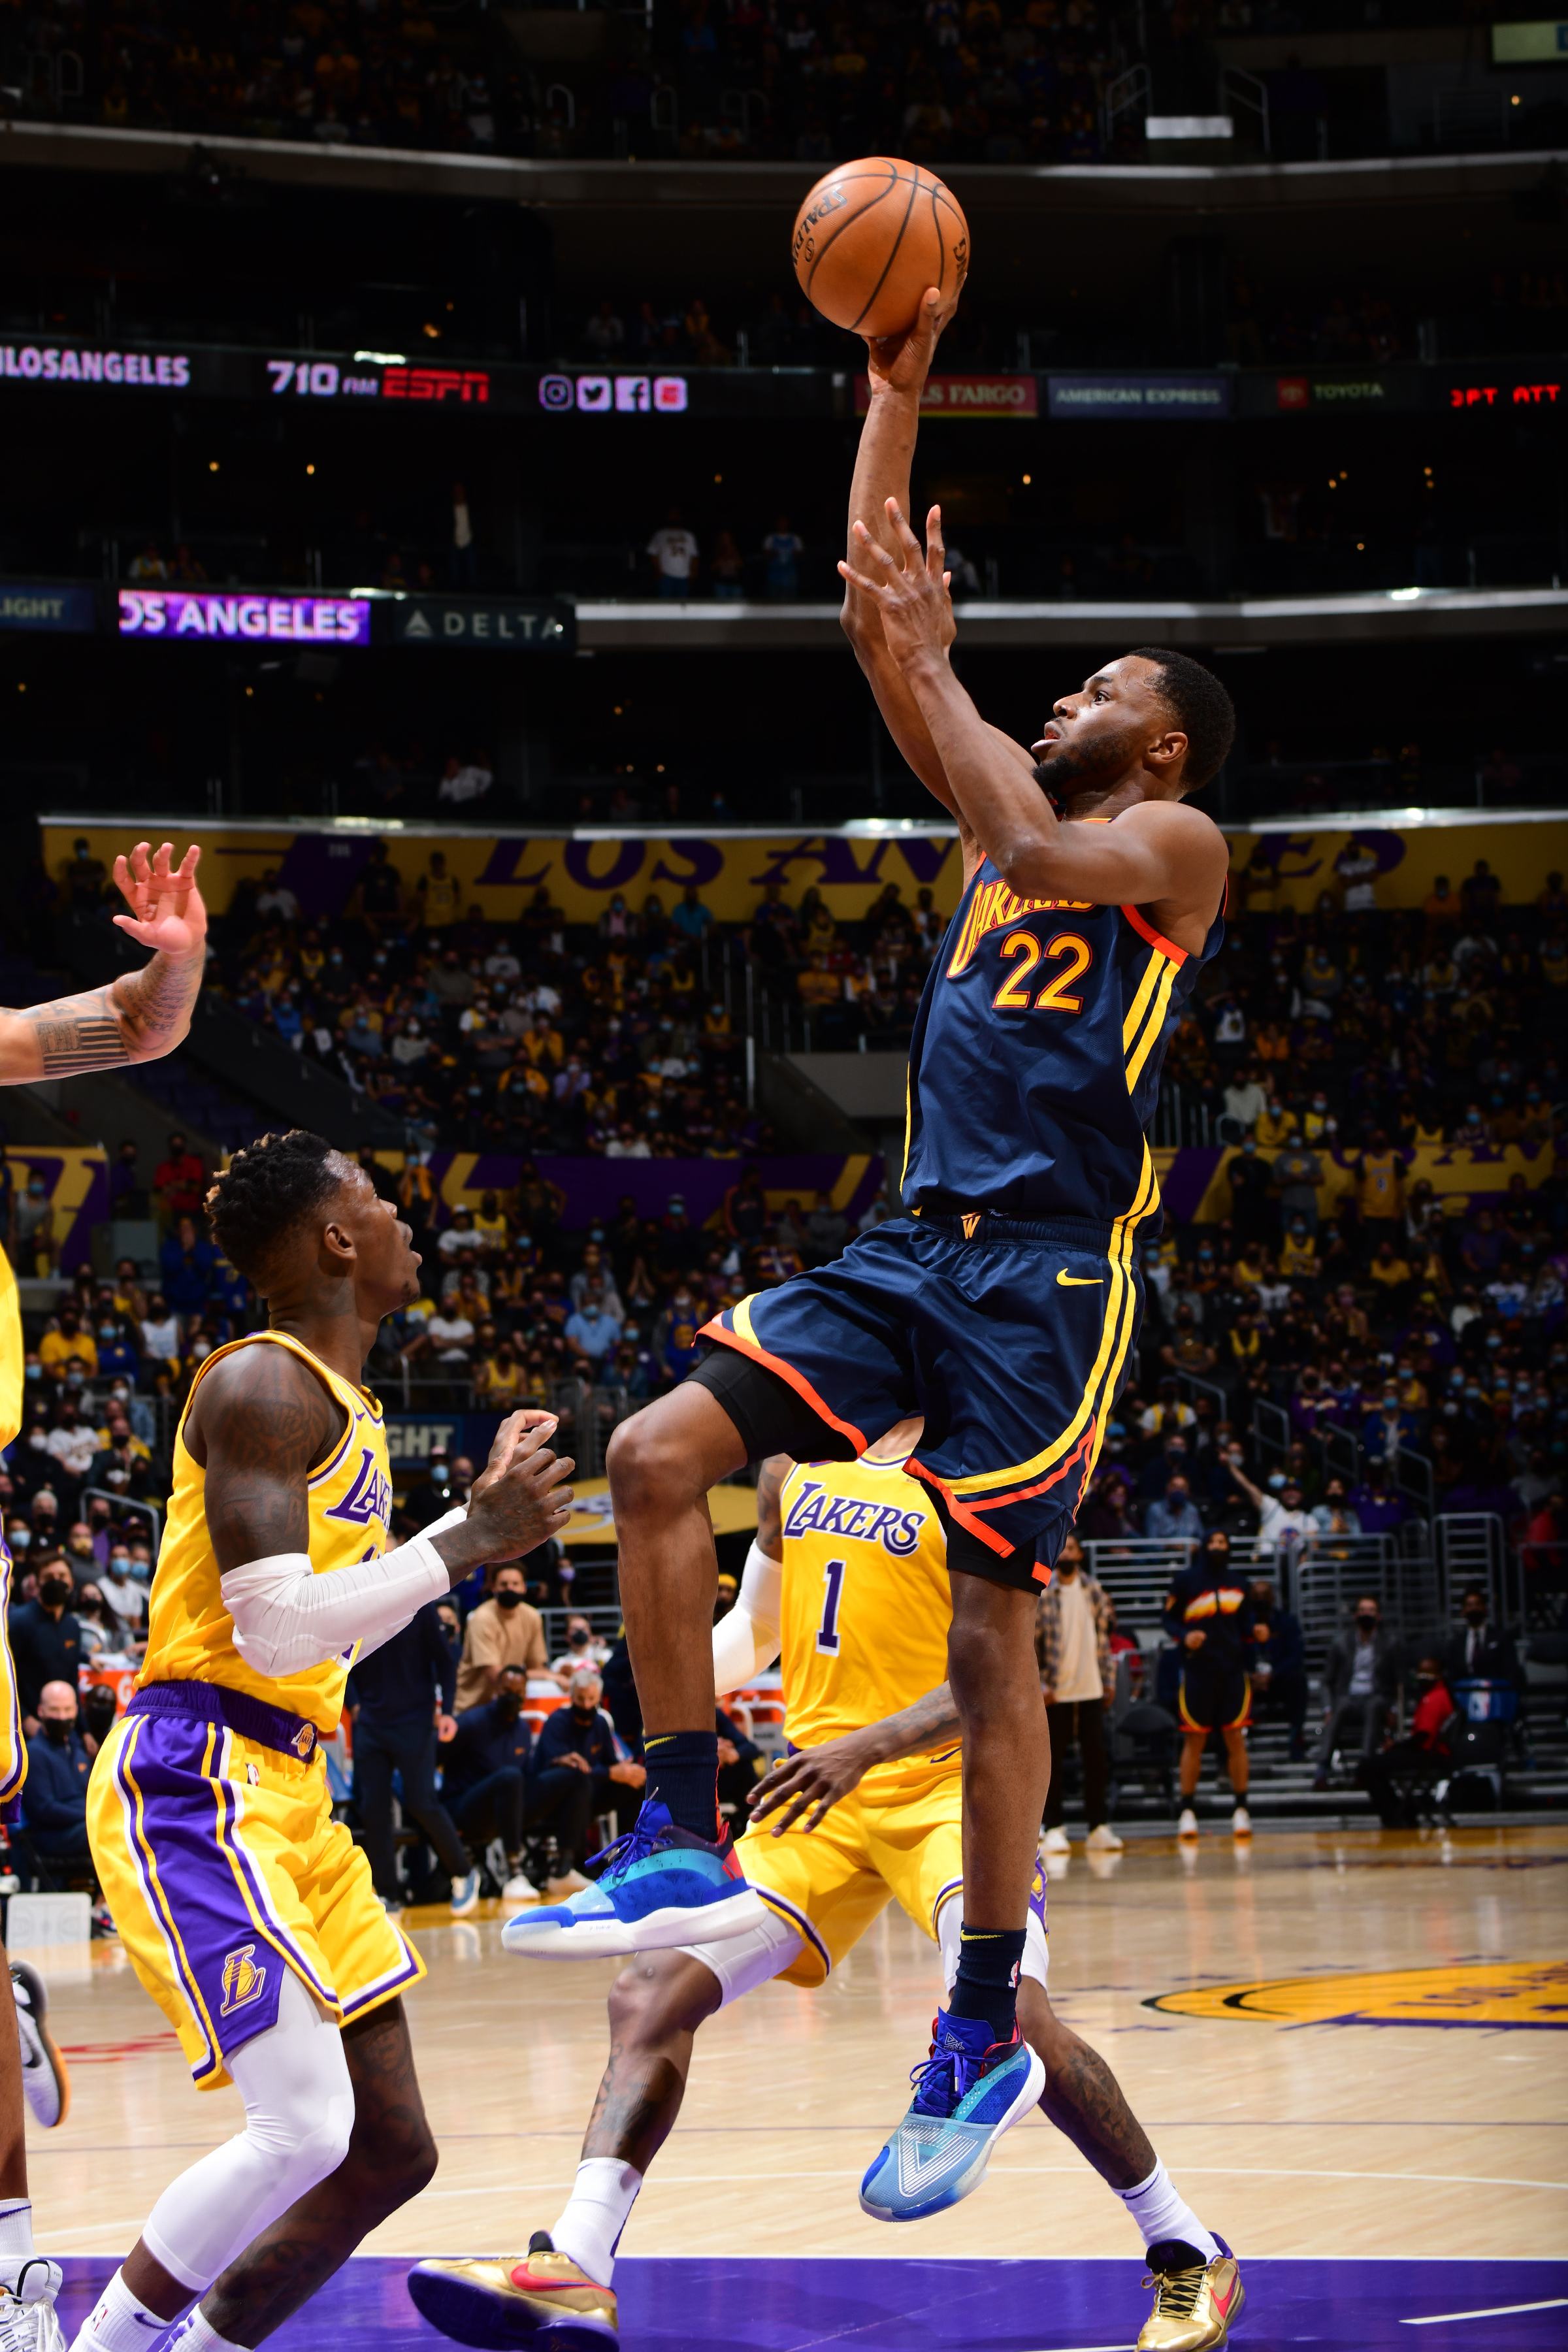 Andrew Wiggins #22 of the Golden State Warriors shoots the ball against the Los Angeles Lakers during the 2021 NBA Play-In Tournament on May 19, 2021 at STAPLES Center in Los Angeles, California.